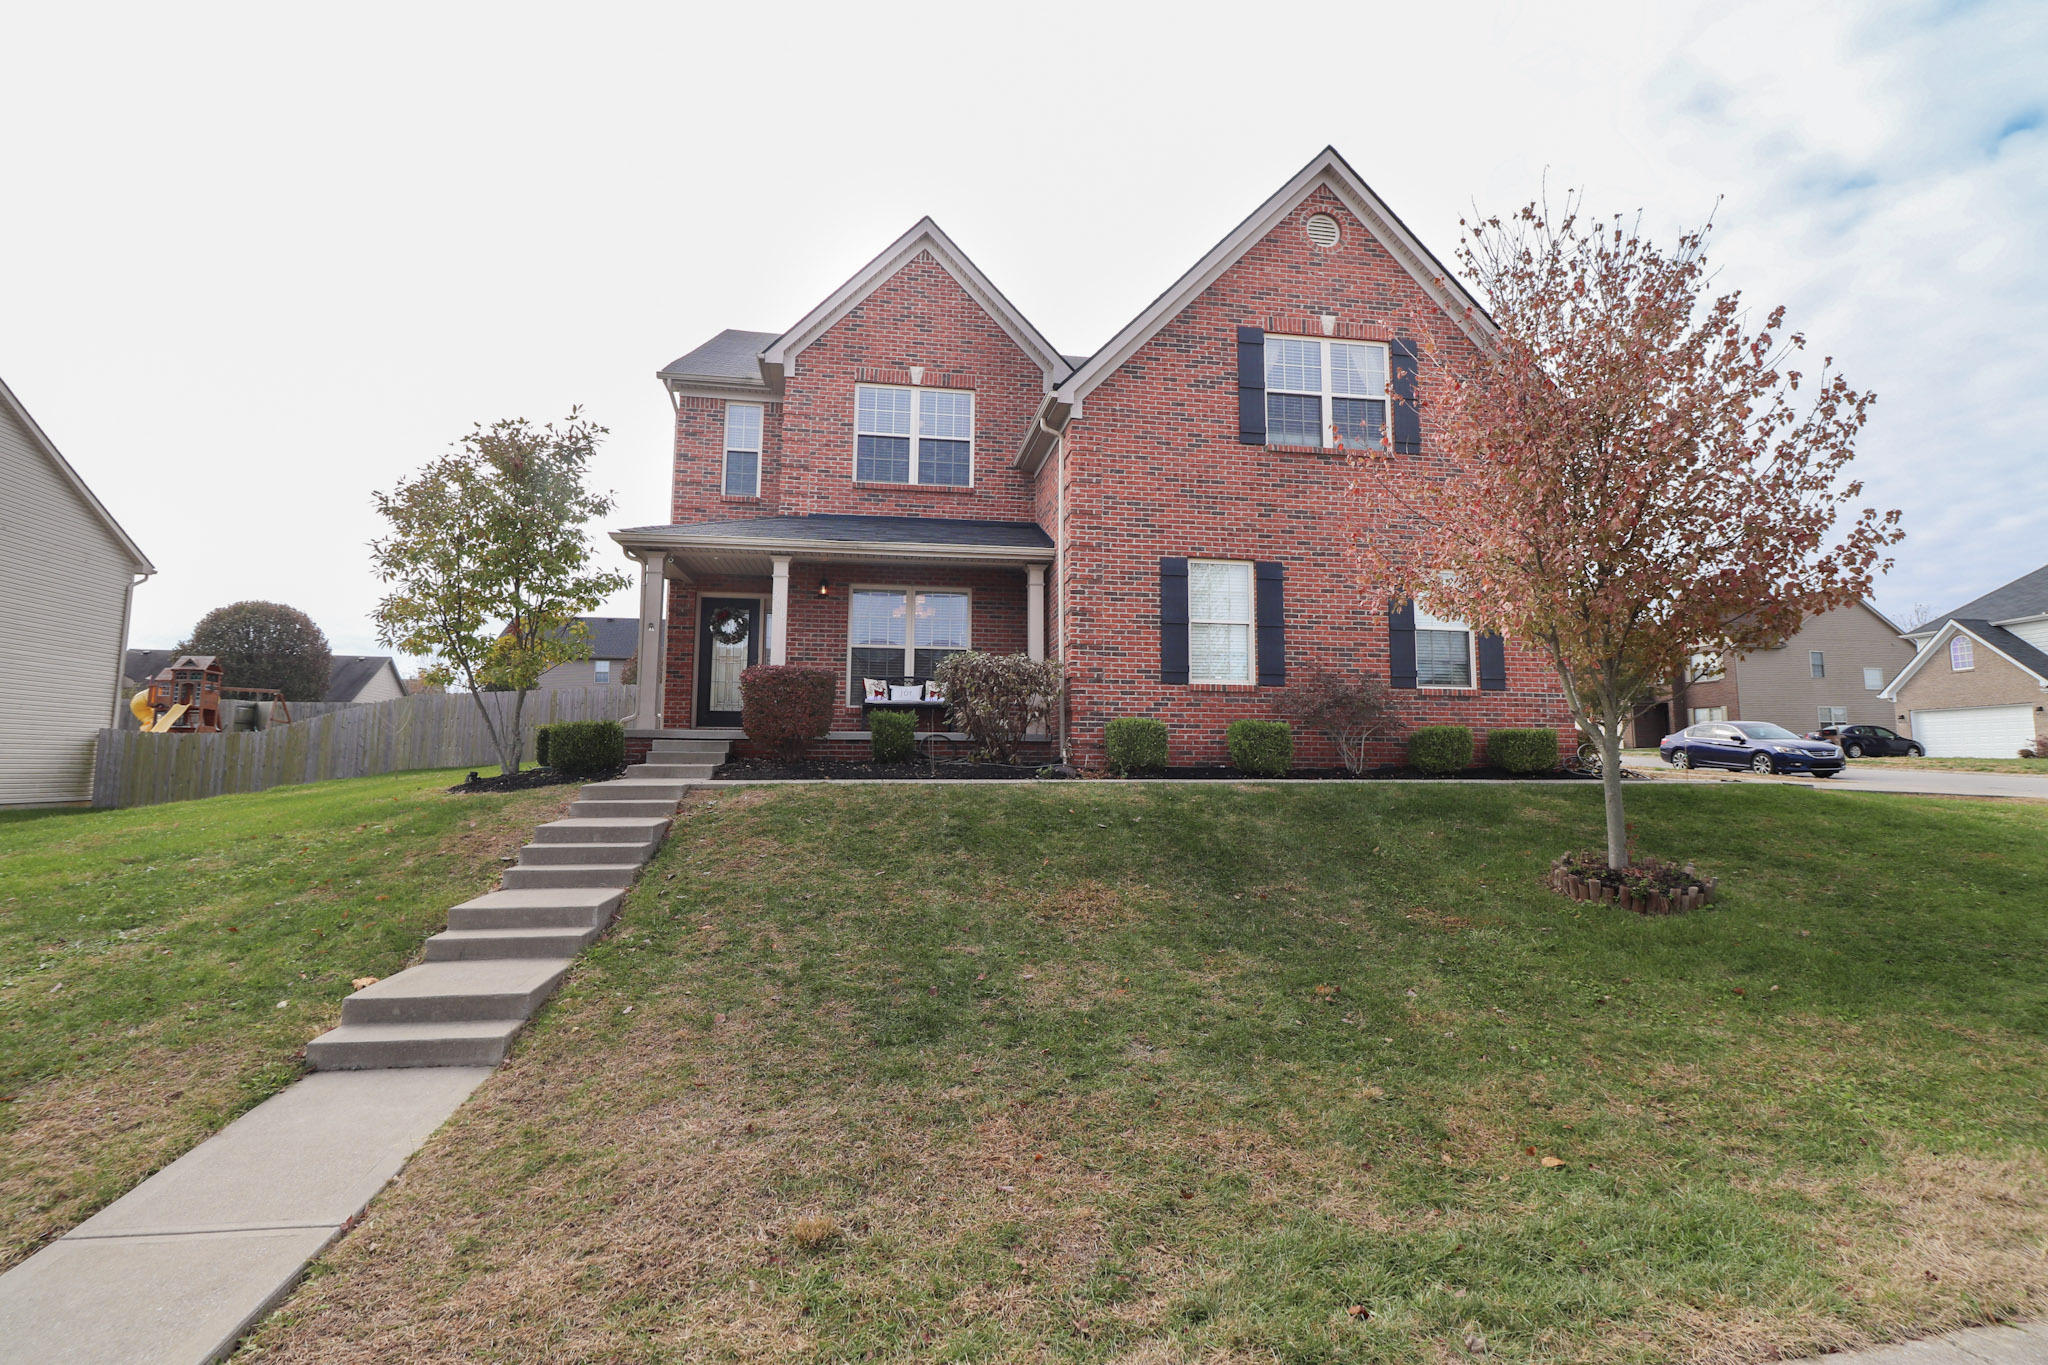 700 Griffin Way, Richmond in Madison County, KY 40475 Home for Sale